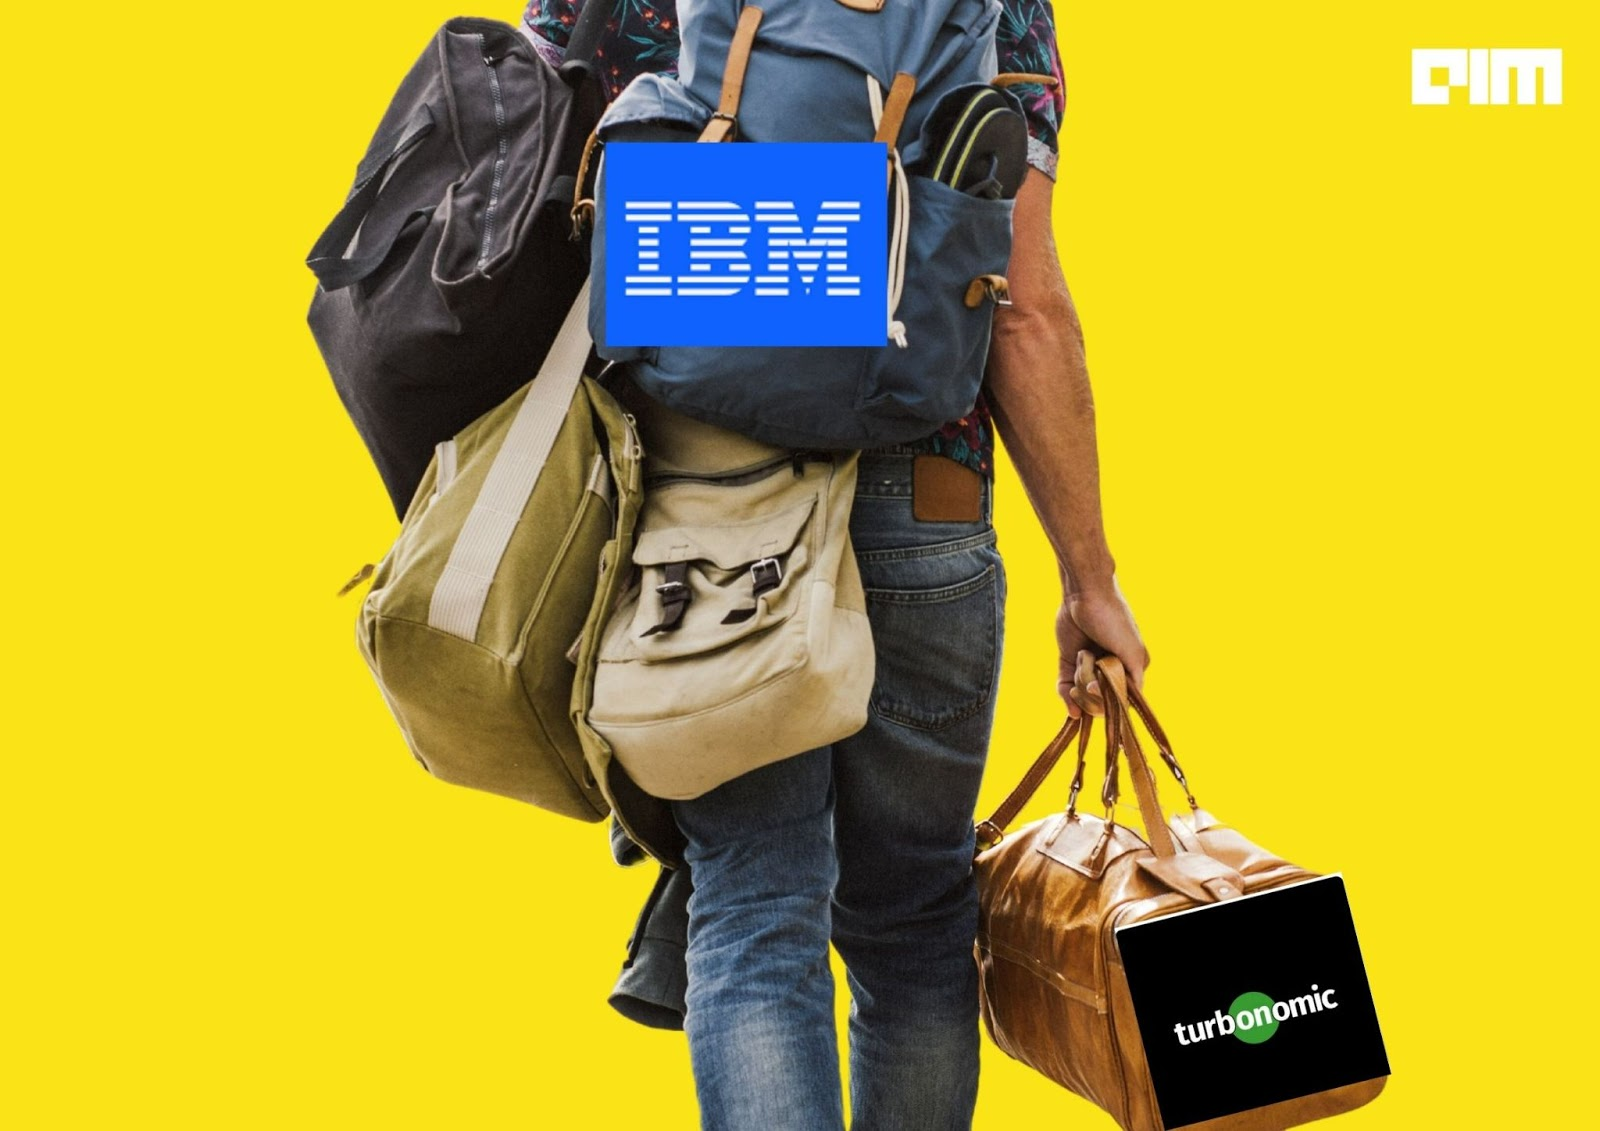 Why Is IBM Acquiring This AIOps Firm?